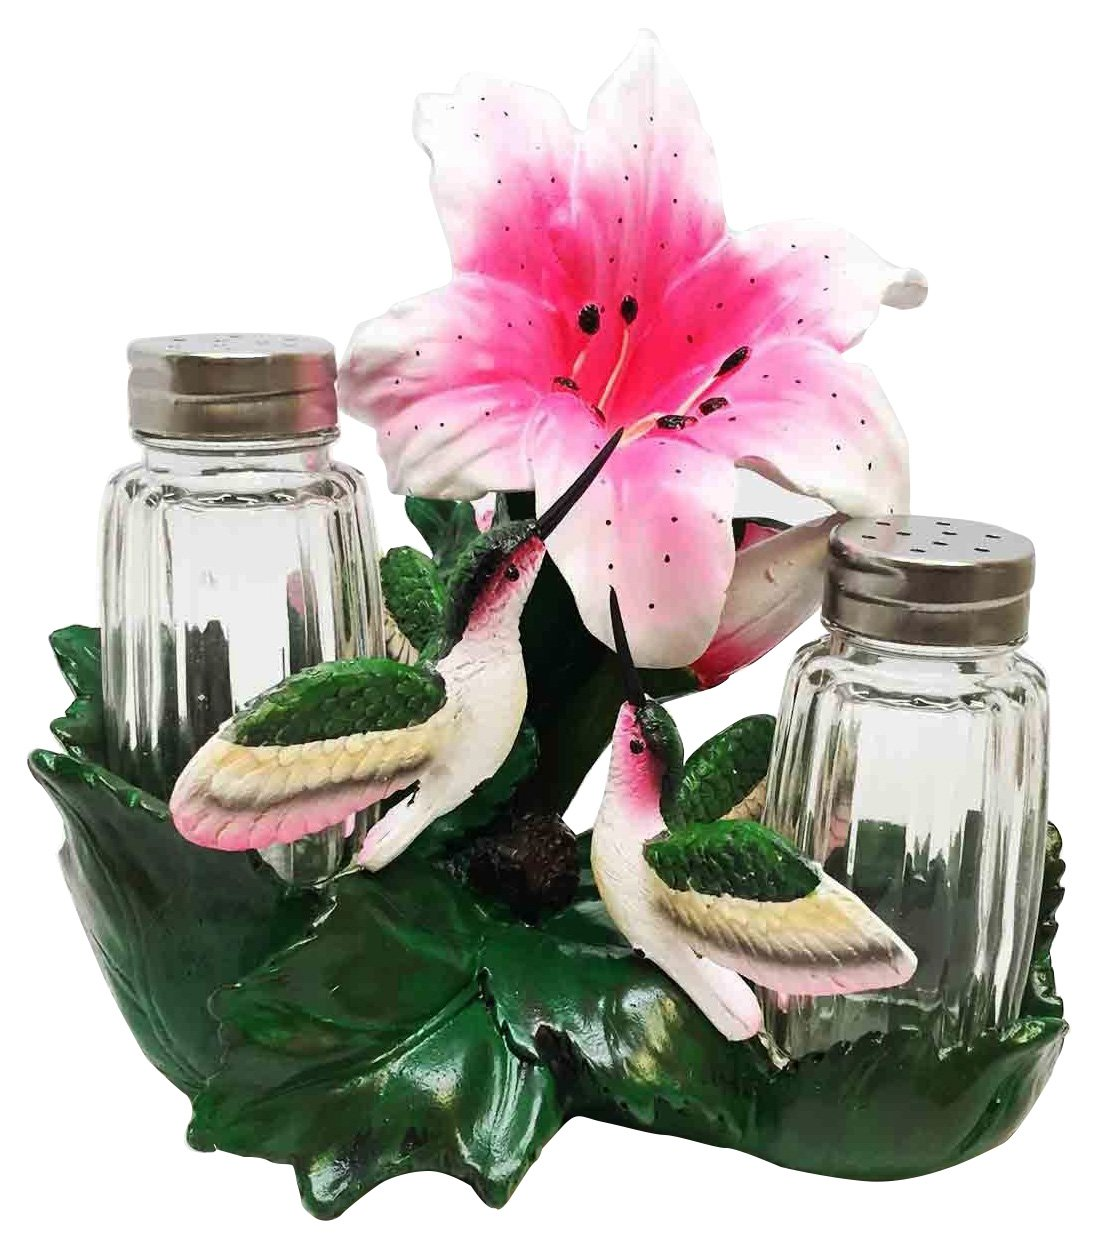 BEAUTY OF NATURE HUMMINGBIRDS WITH NECTARINE BLOOMS SALT PEPPER SHAKER HOLDER by ATL